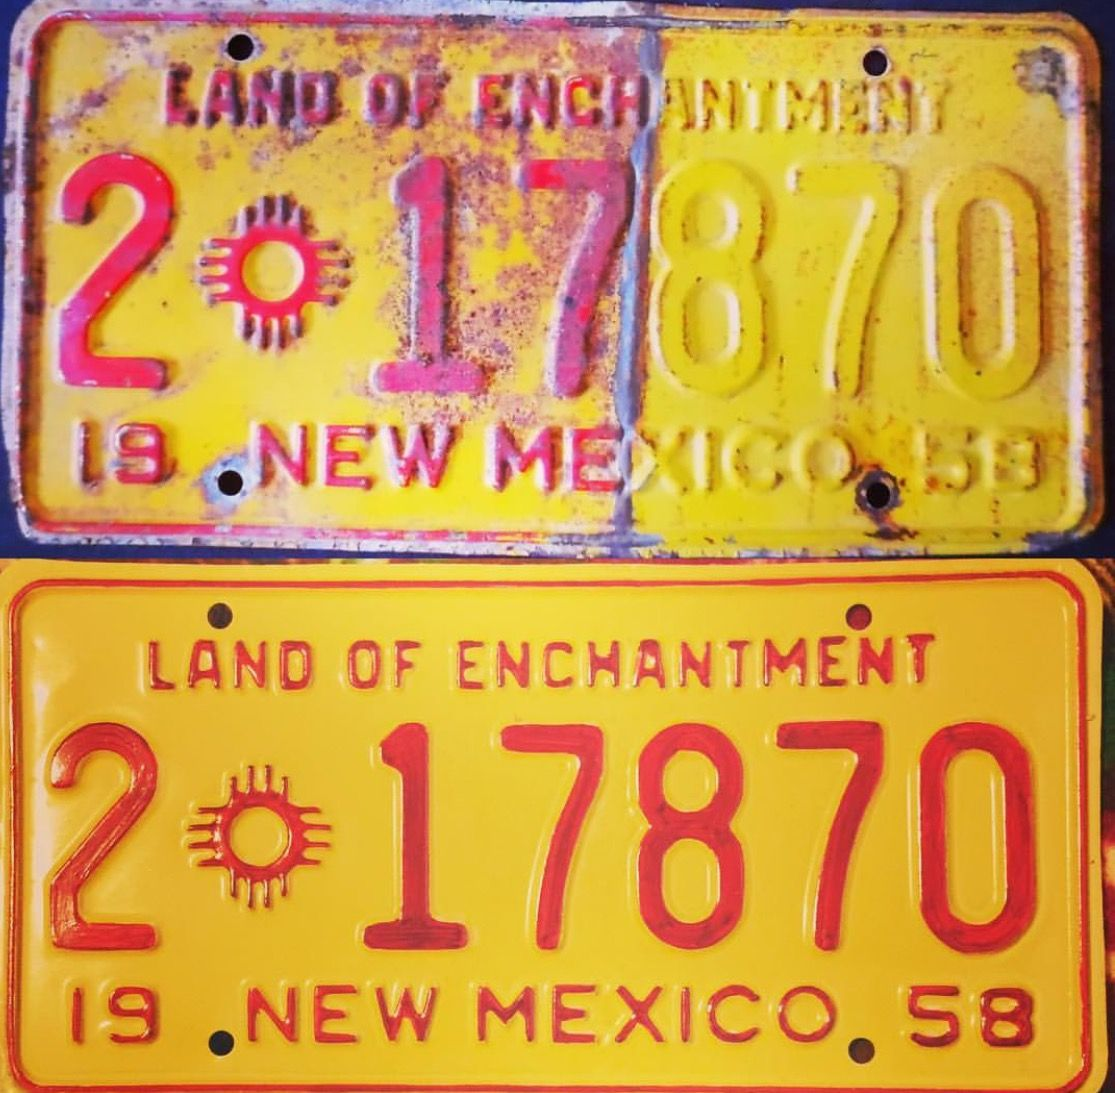 1958 License Plate Plate Collection and Restoration. 1958 New ...